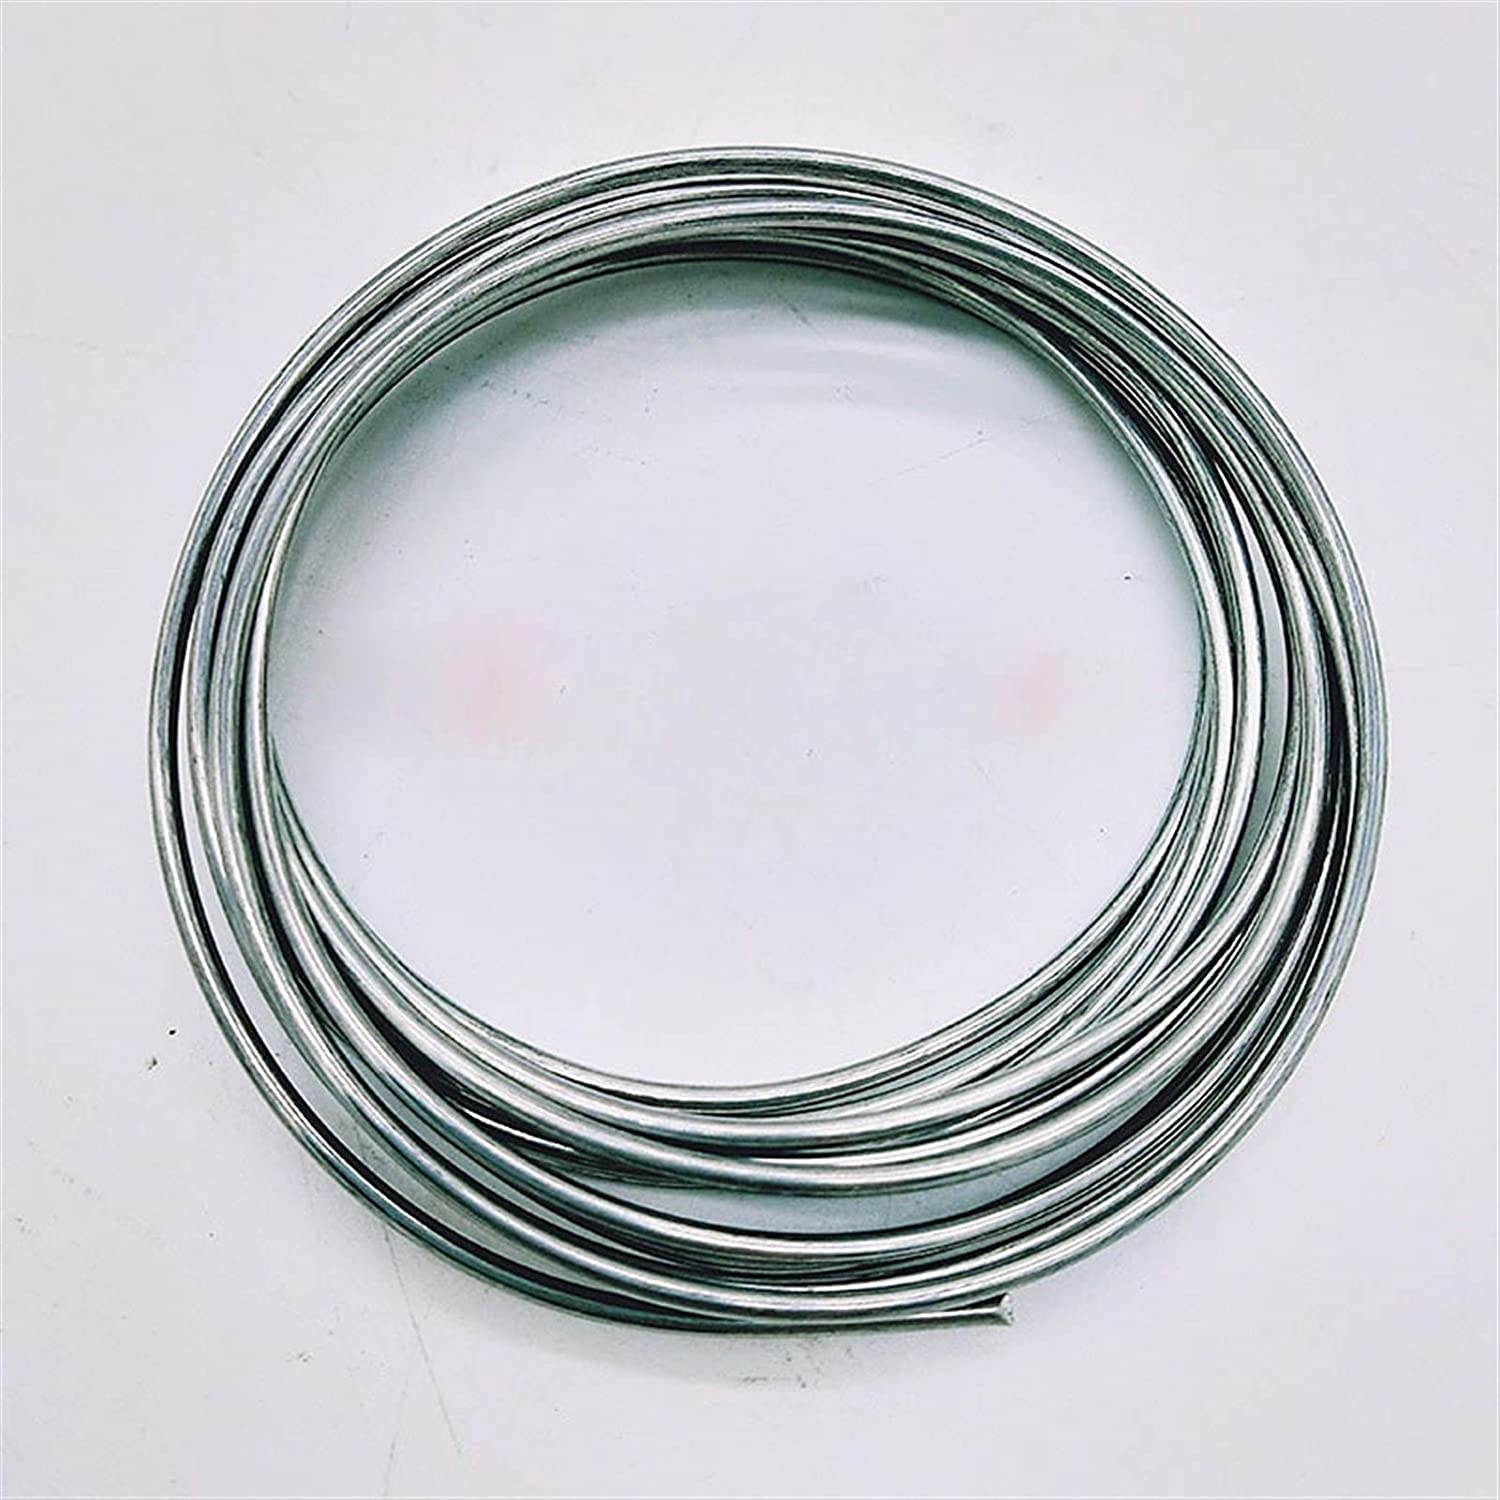 caihv-Welding Rod Copper-Aluminum Flux Max 47% OFF for Cored Max 64% OFF Welding Wire